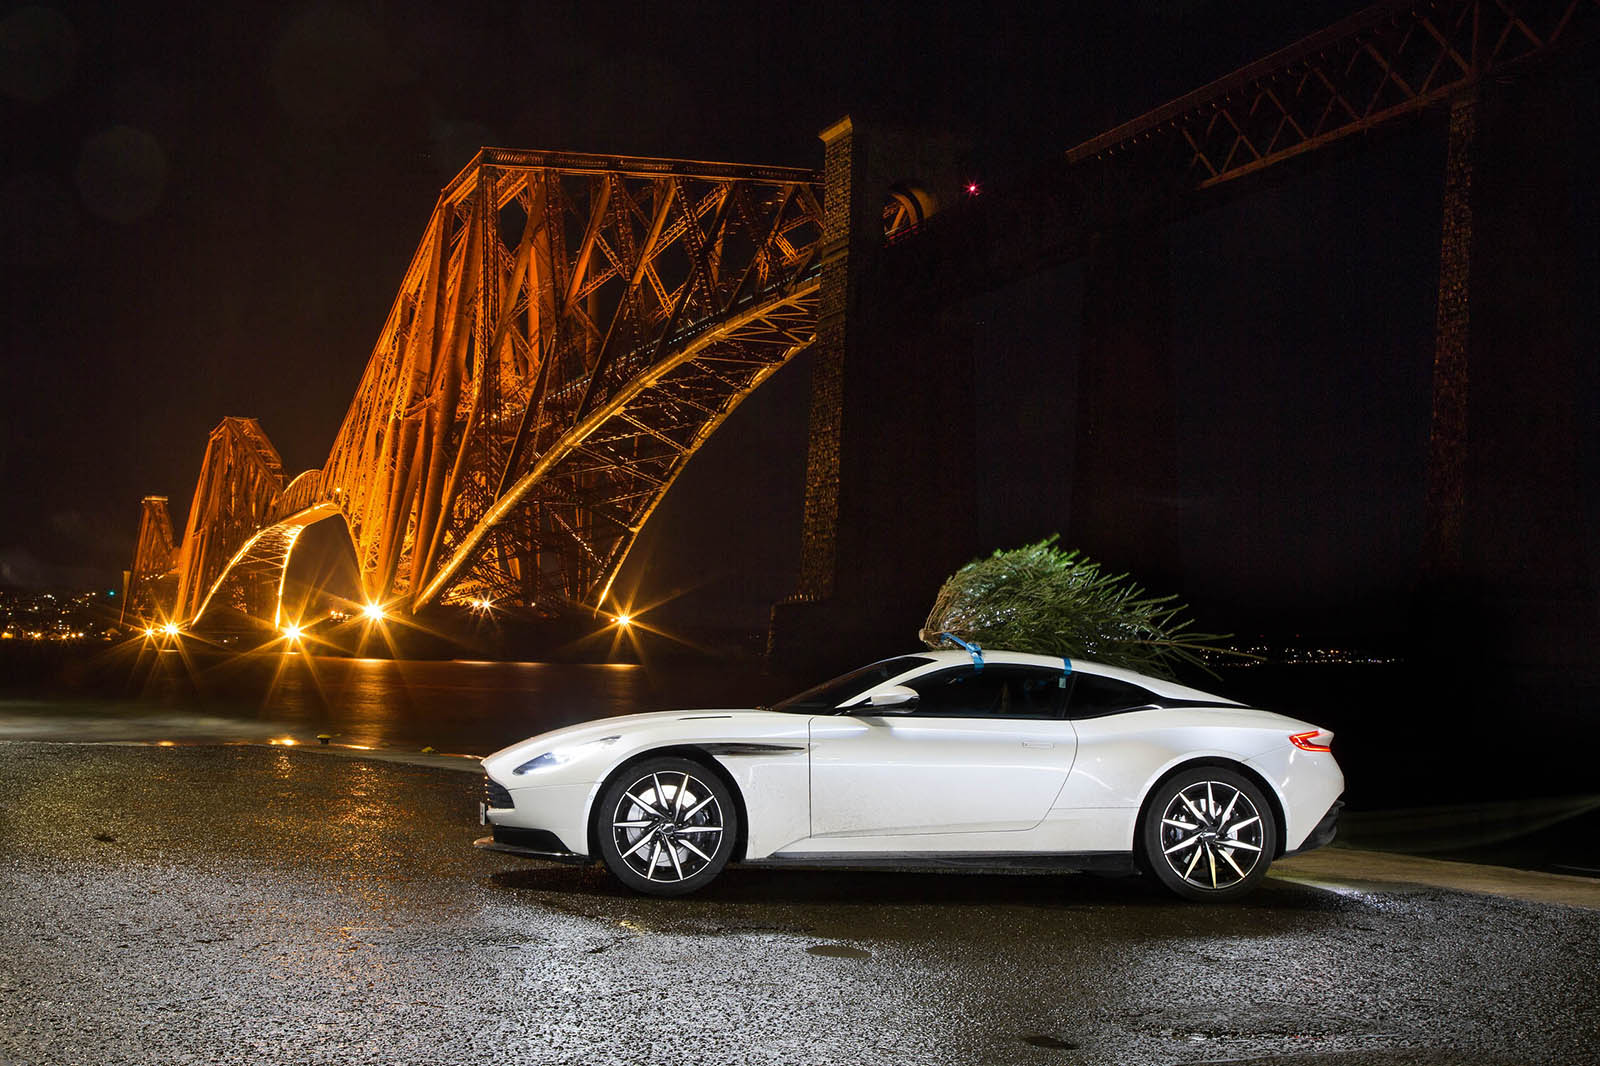 Christmas Sports Car.Aston Martin Db11 Delivering A Christmas Tree From Scotland